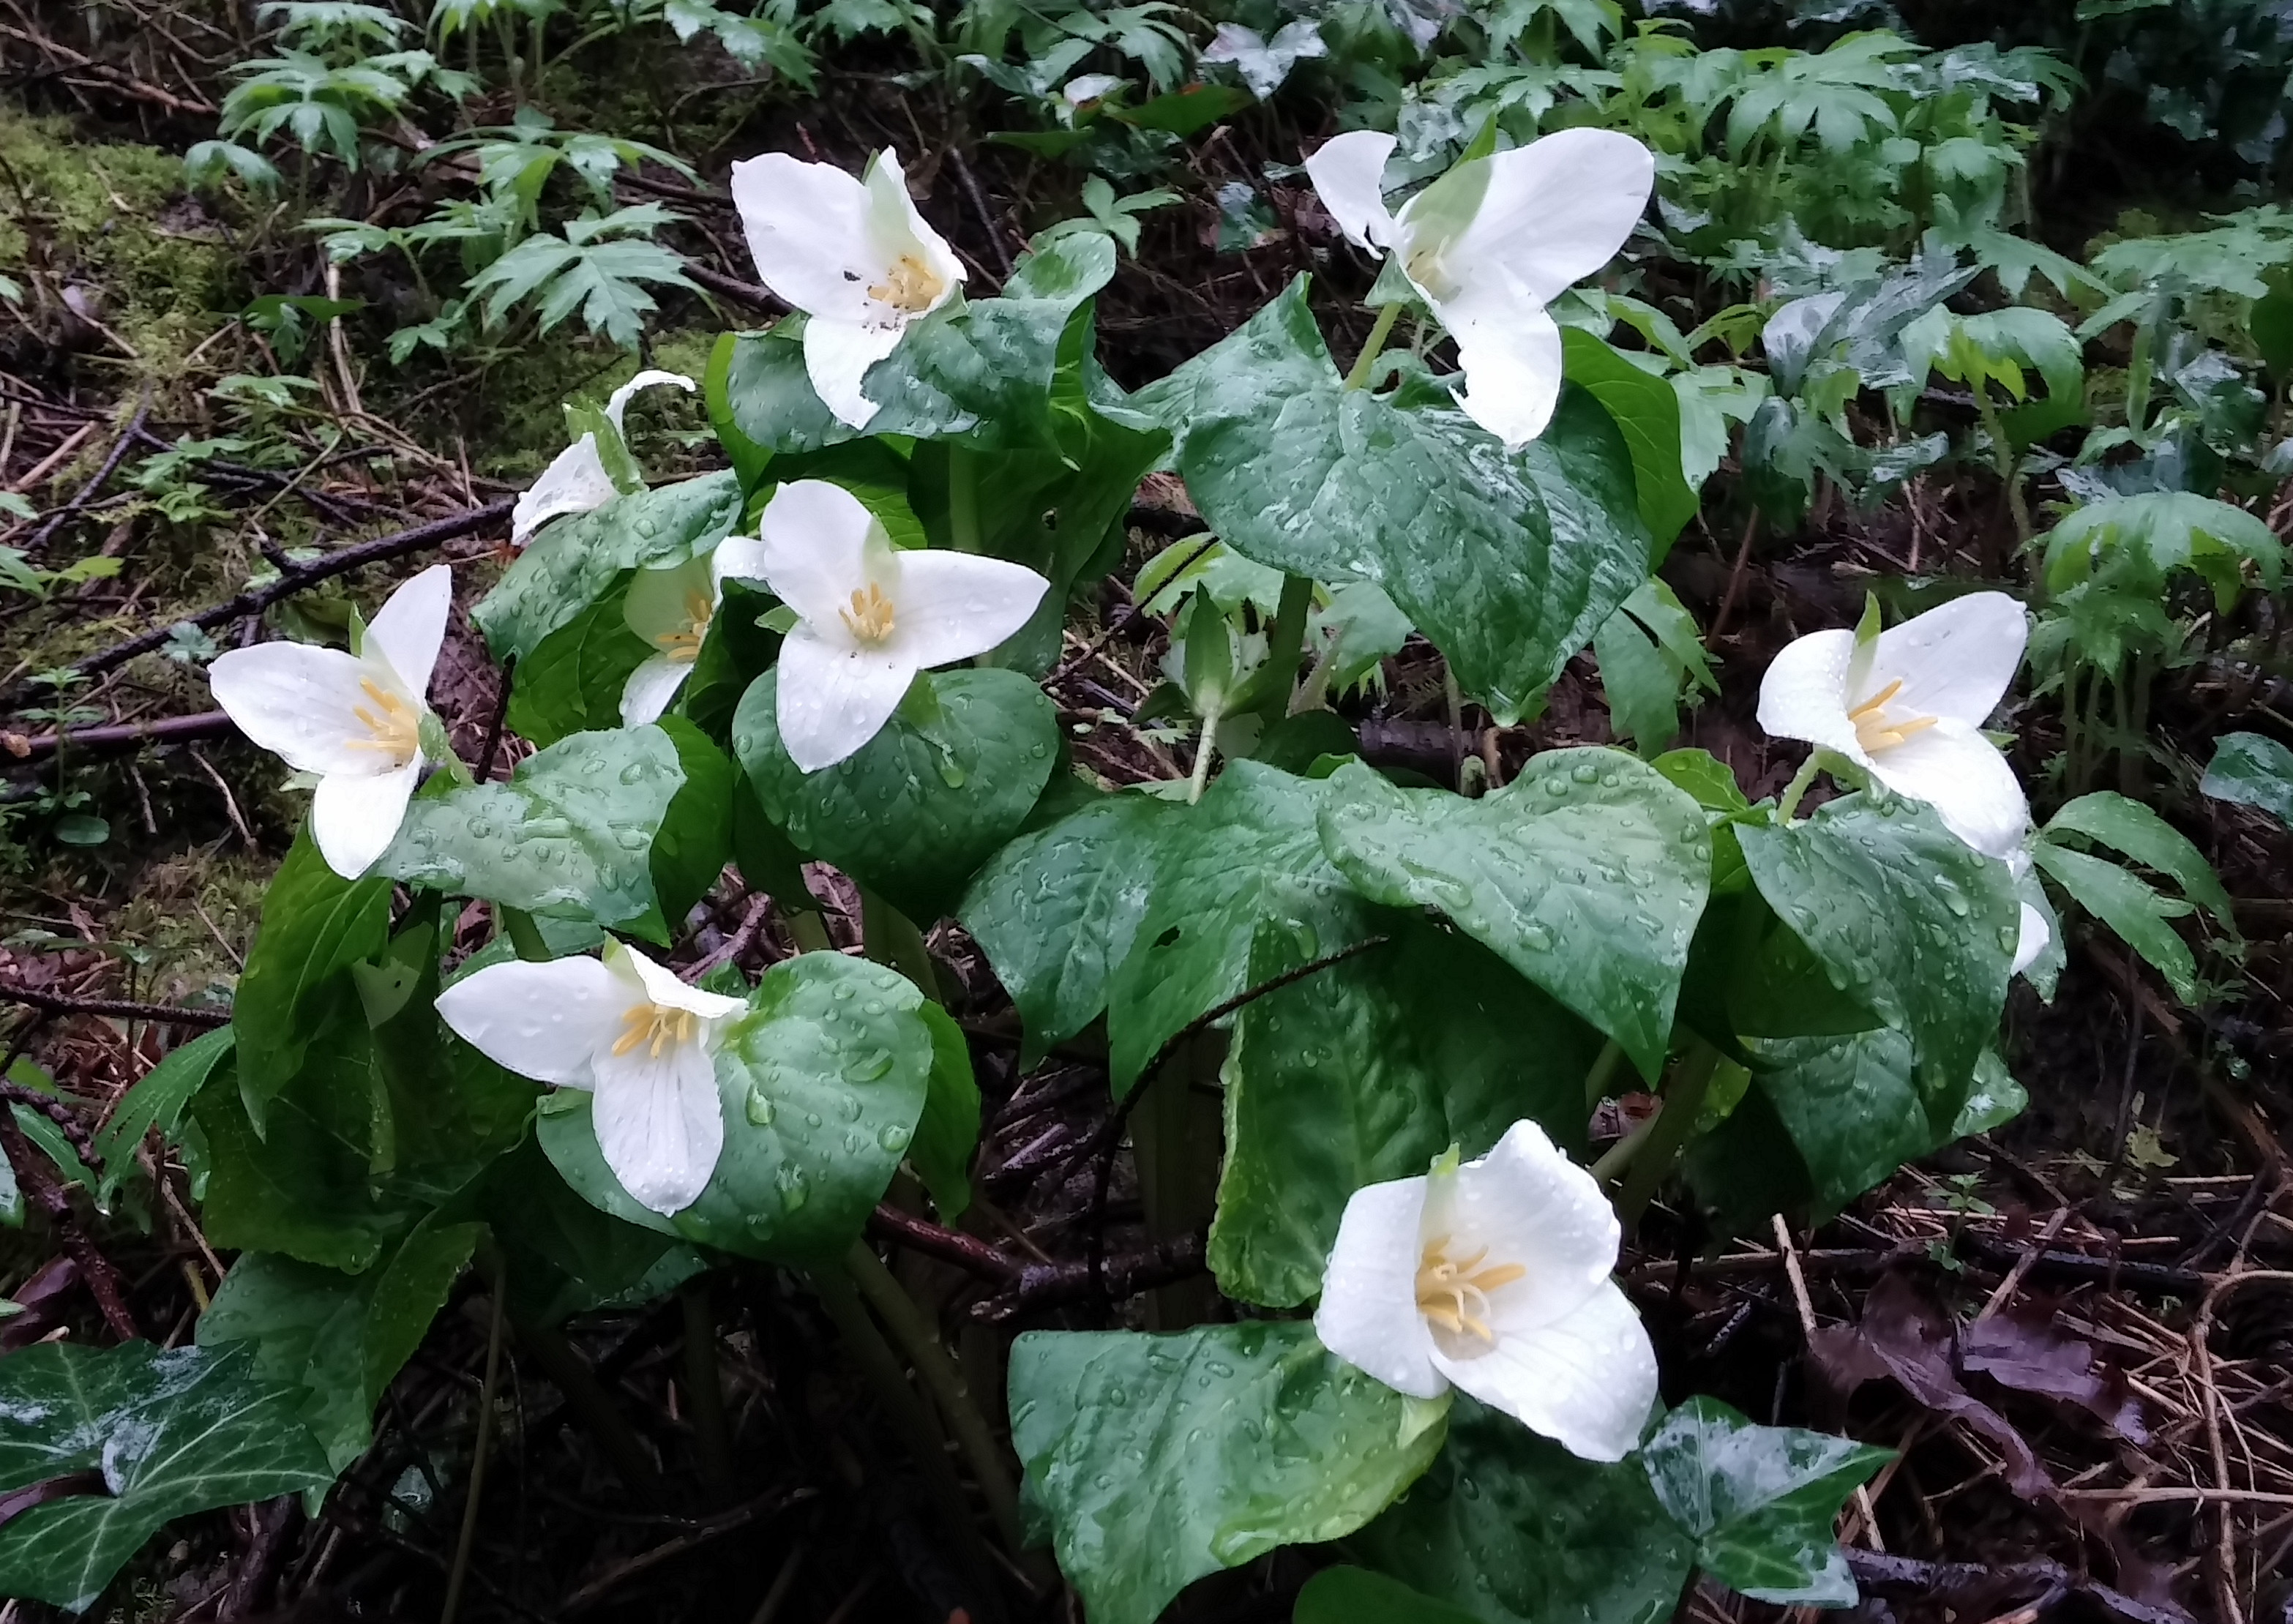 Trilliums are blooming in Himes Park on March 14th walk.